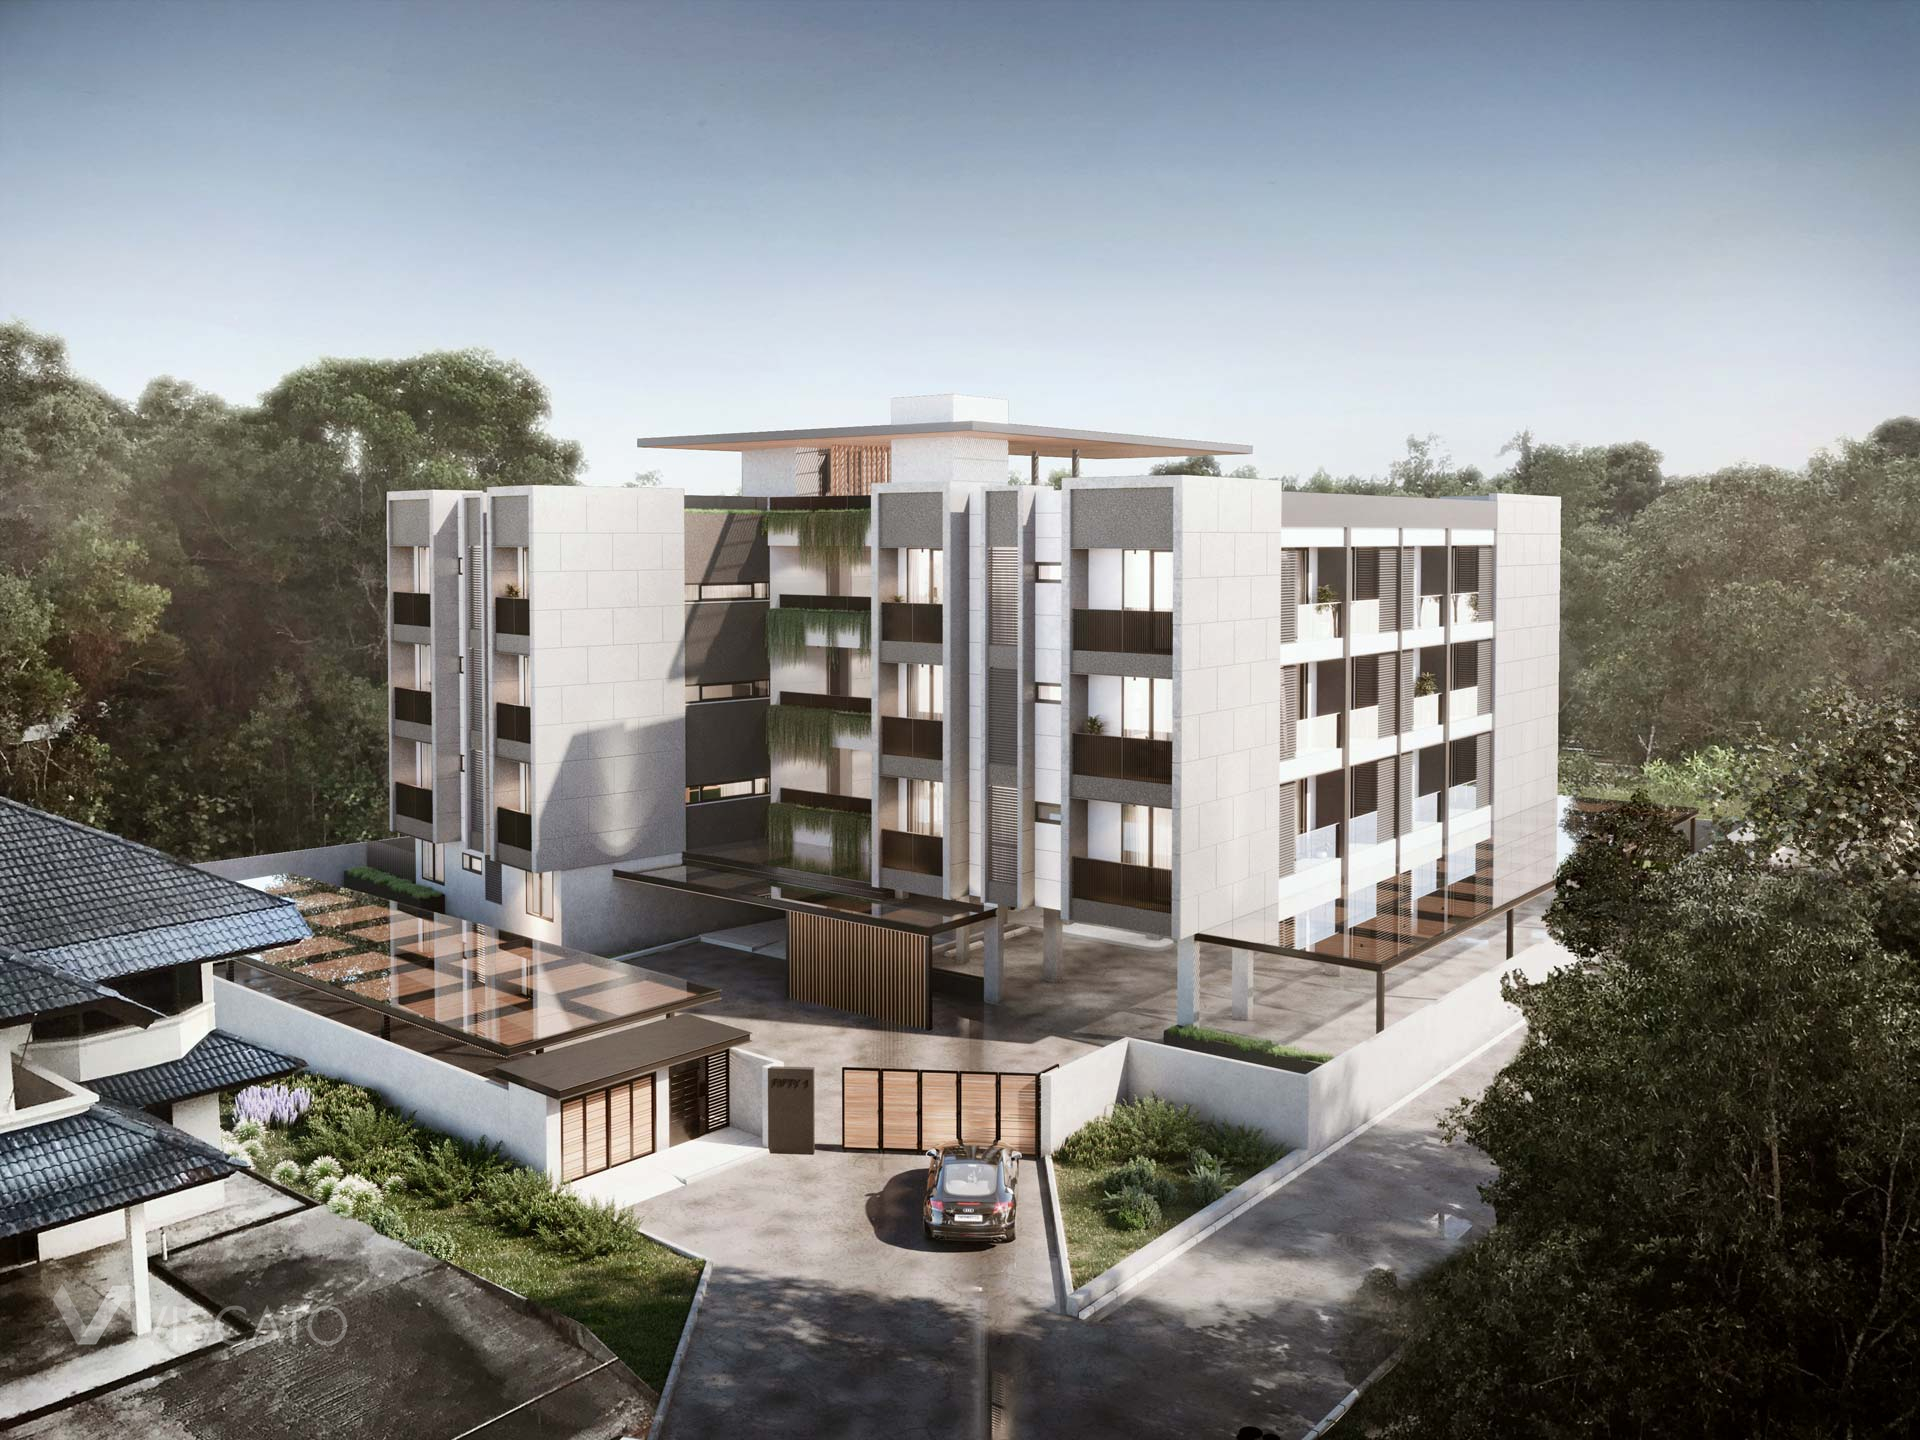 Apartments in green oasis, 3D architectural rendering